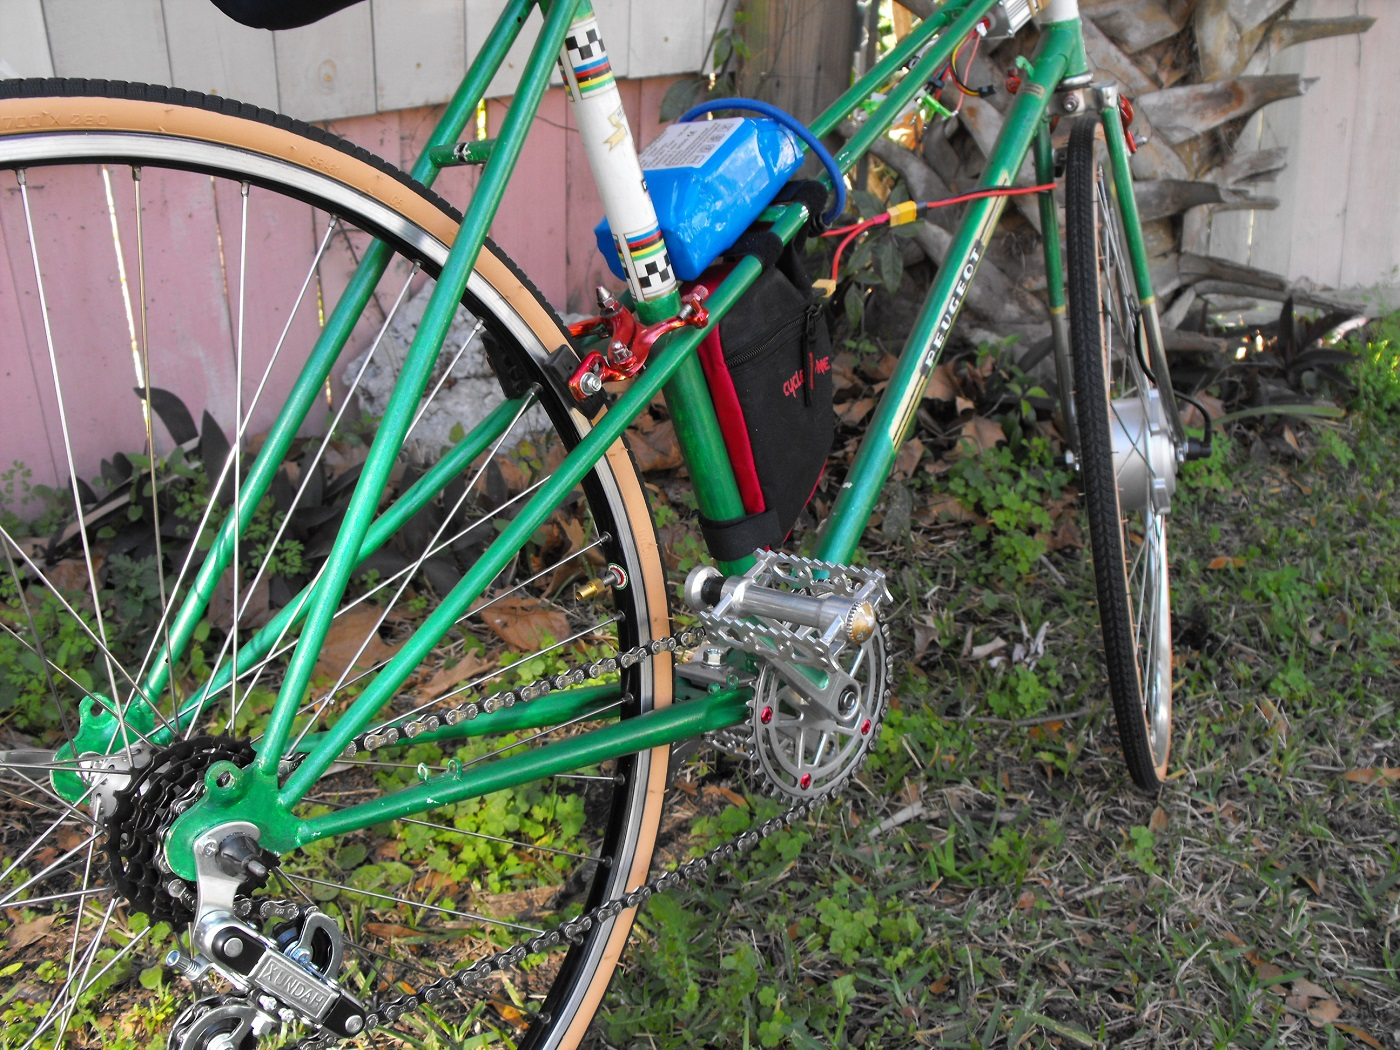 Peugeot Mixte electric taking shape | The Classic and Antique